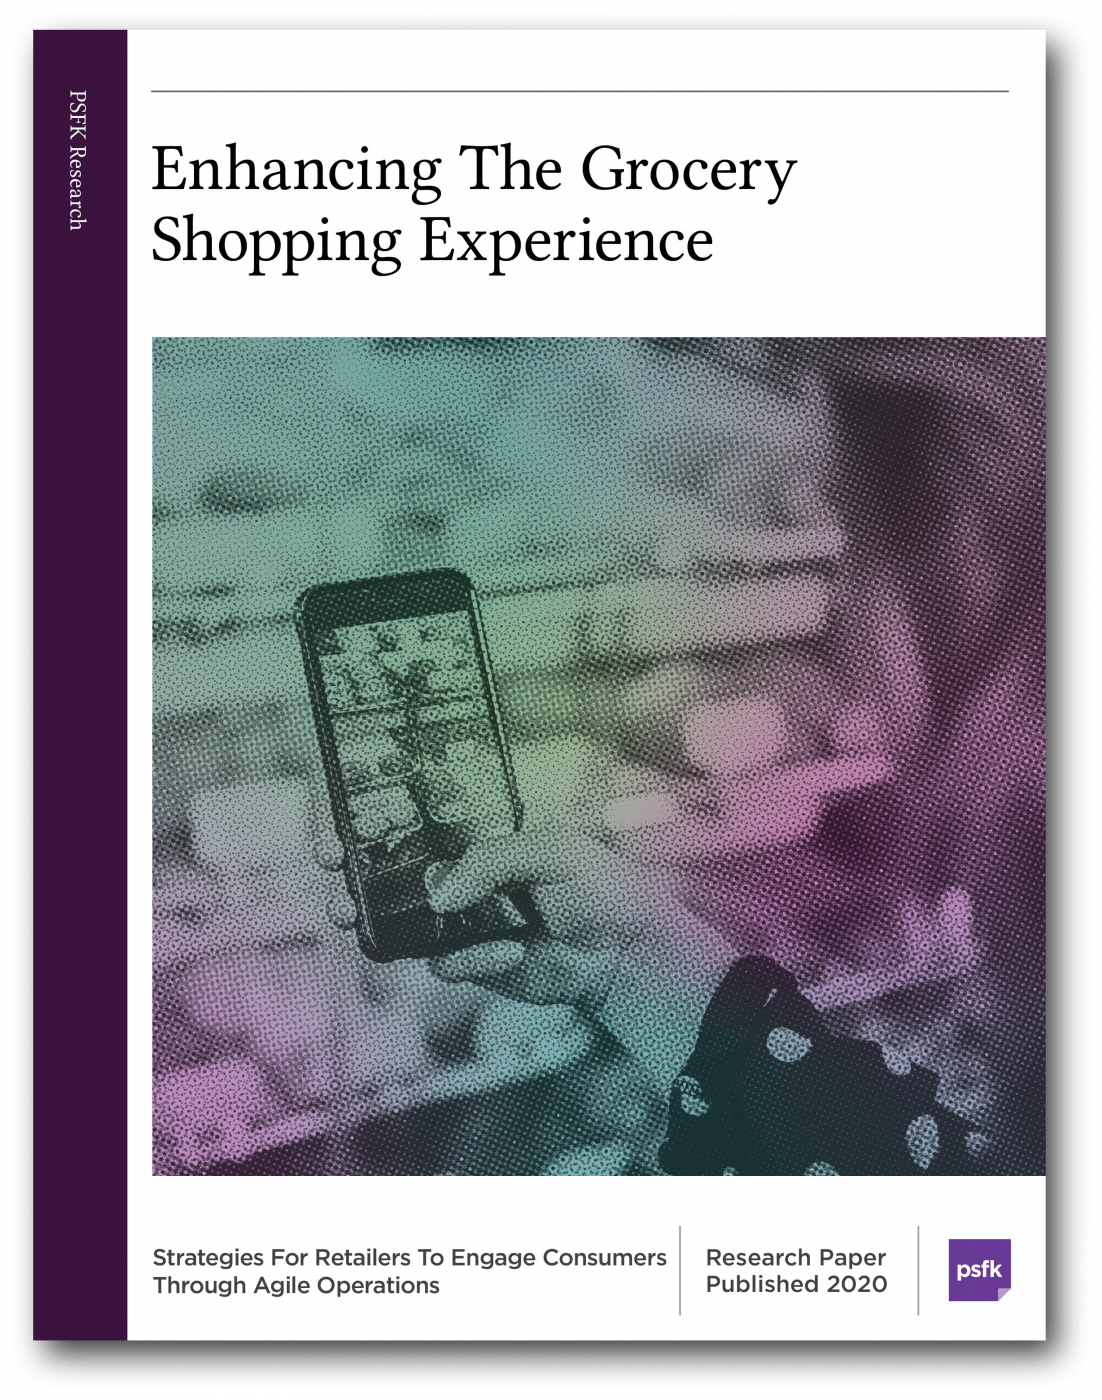 Enhancing The Grocery Shopping Experience